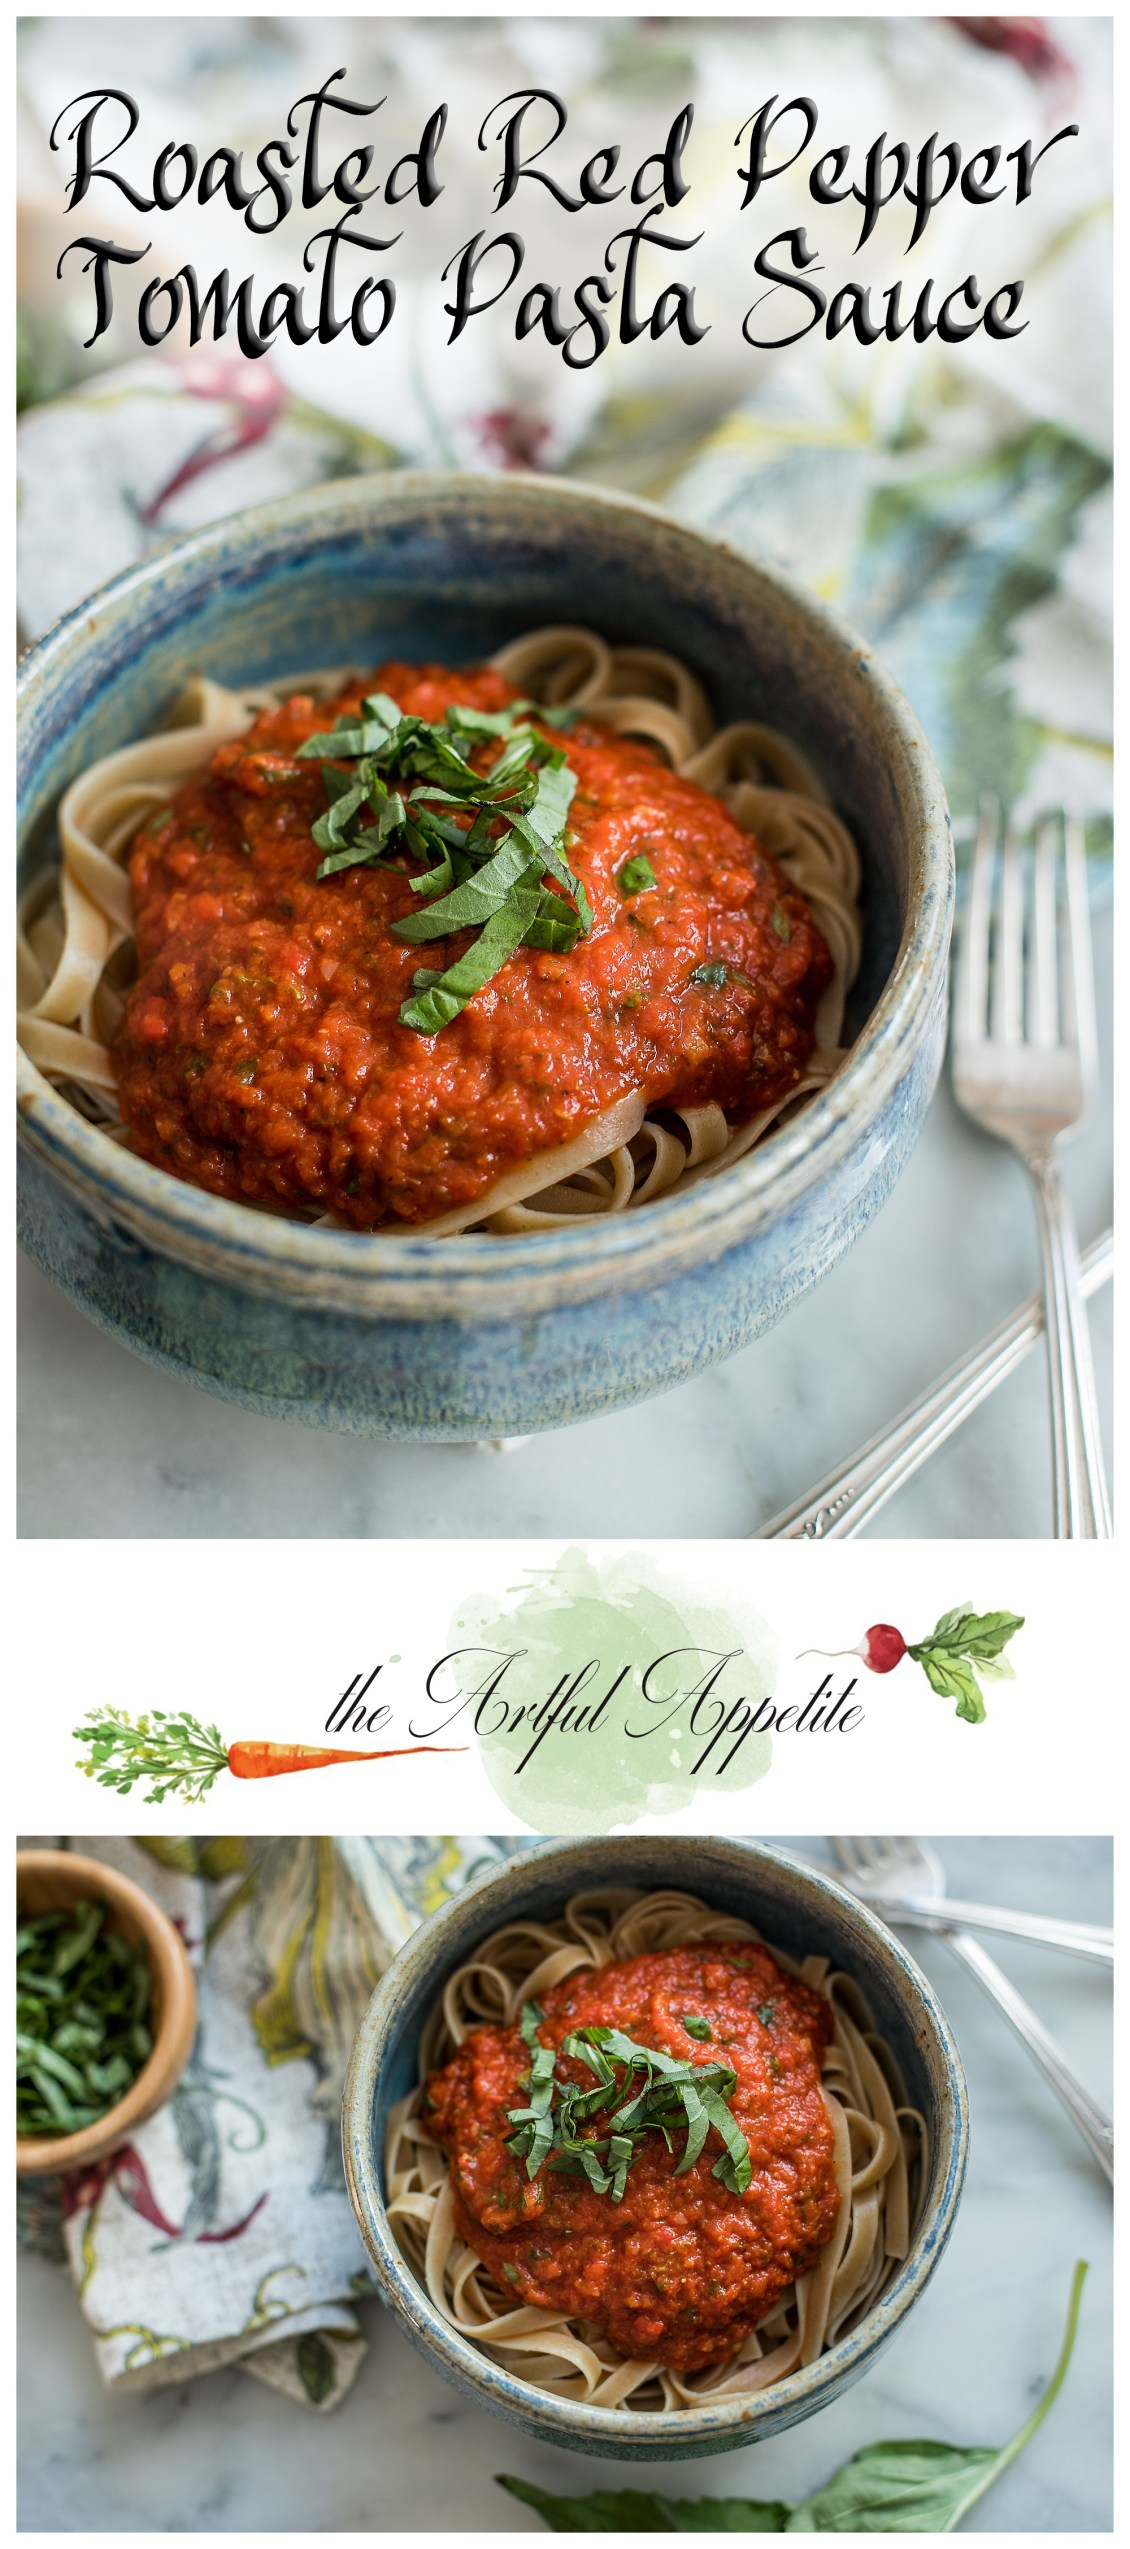 This roasted red pepper tomato sauce is a hearty vegan pasta sauce. Perfect for any day of the week!